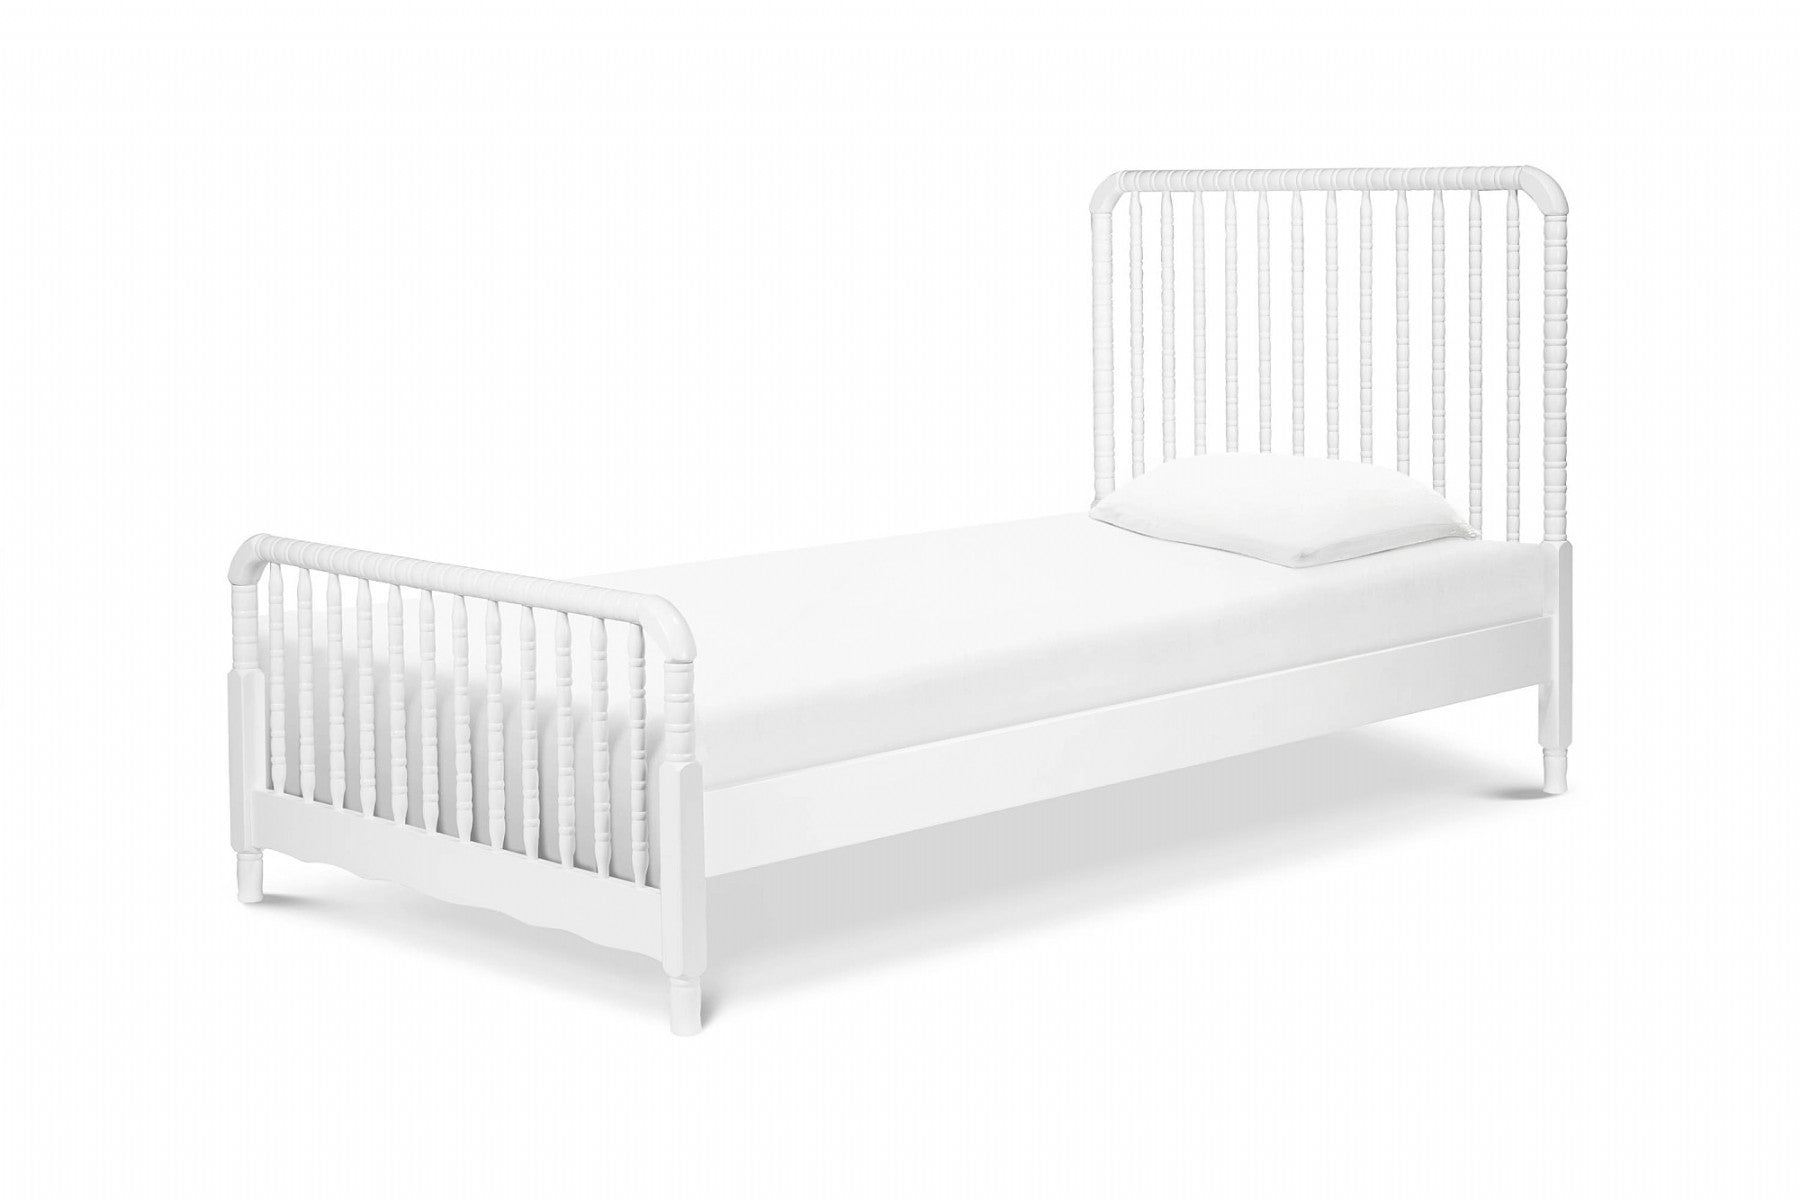 Davinci Jenny Lind Twin Bed in White